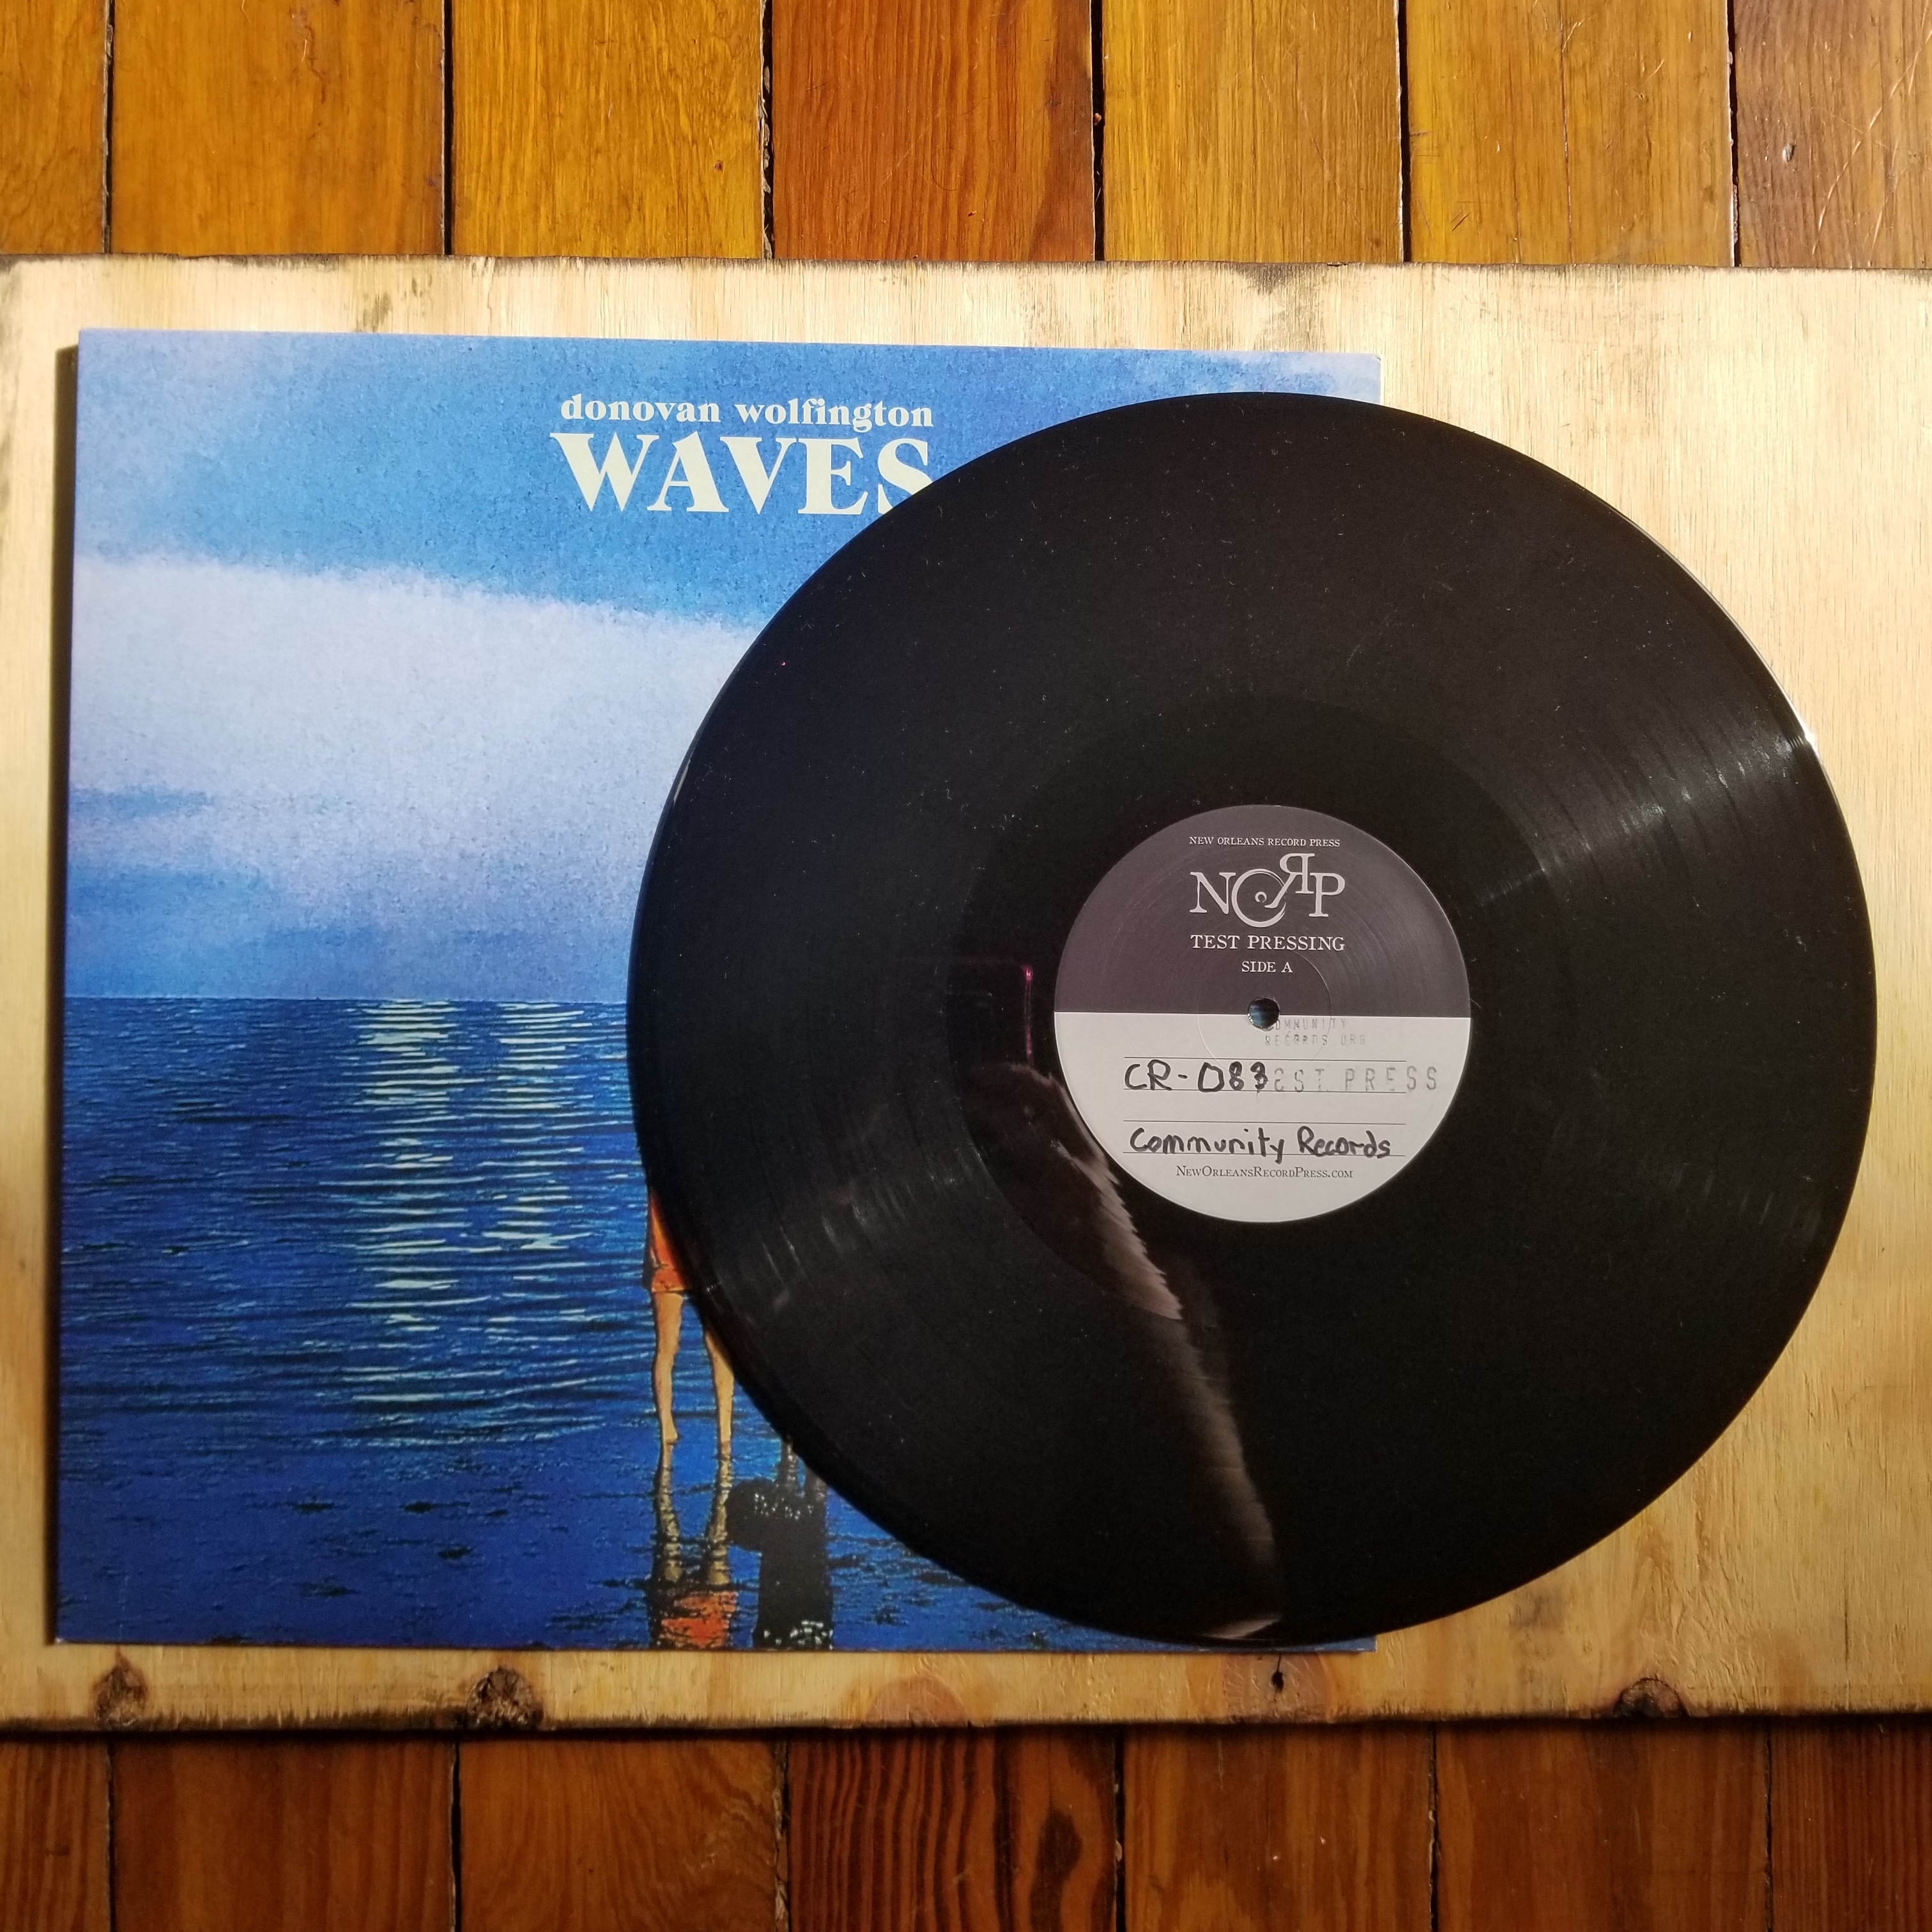 community records - test pressing - donovan wolfington - waves - vinyl